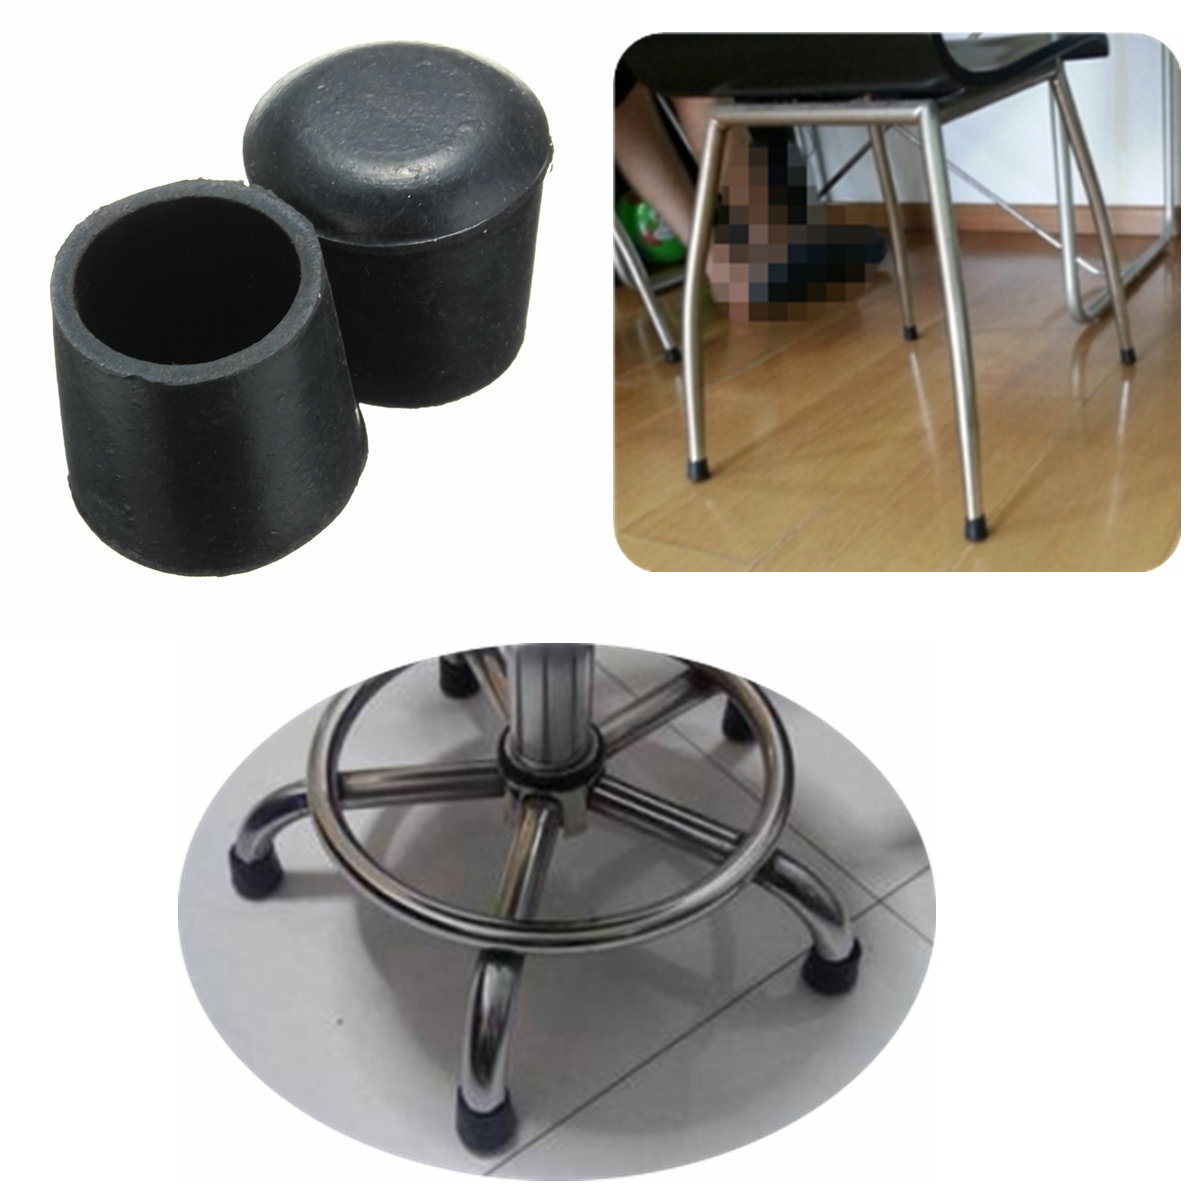 floor chair protectors counter height table and chairs set 20pcs rubber furniture feet leg tip pads